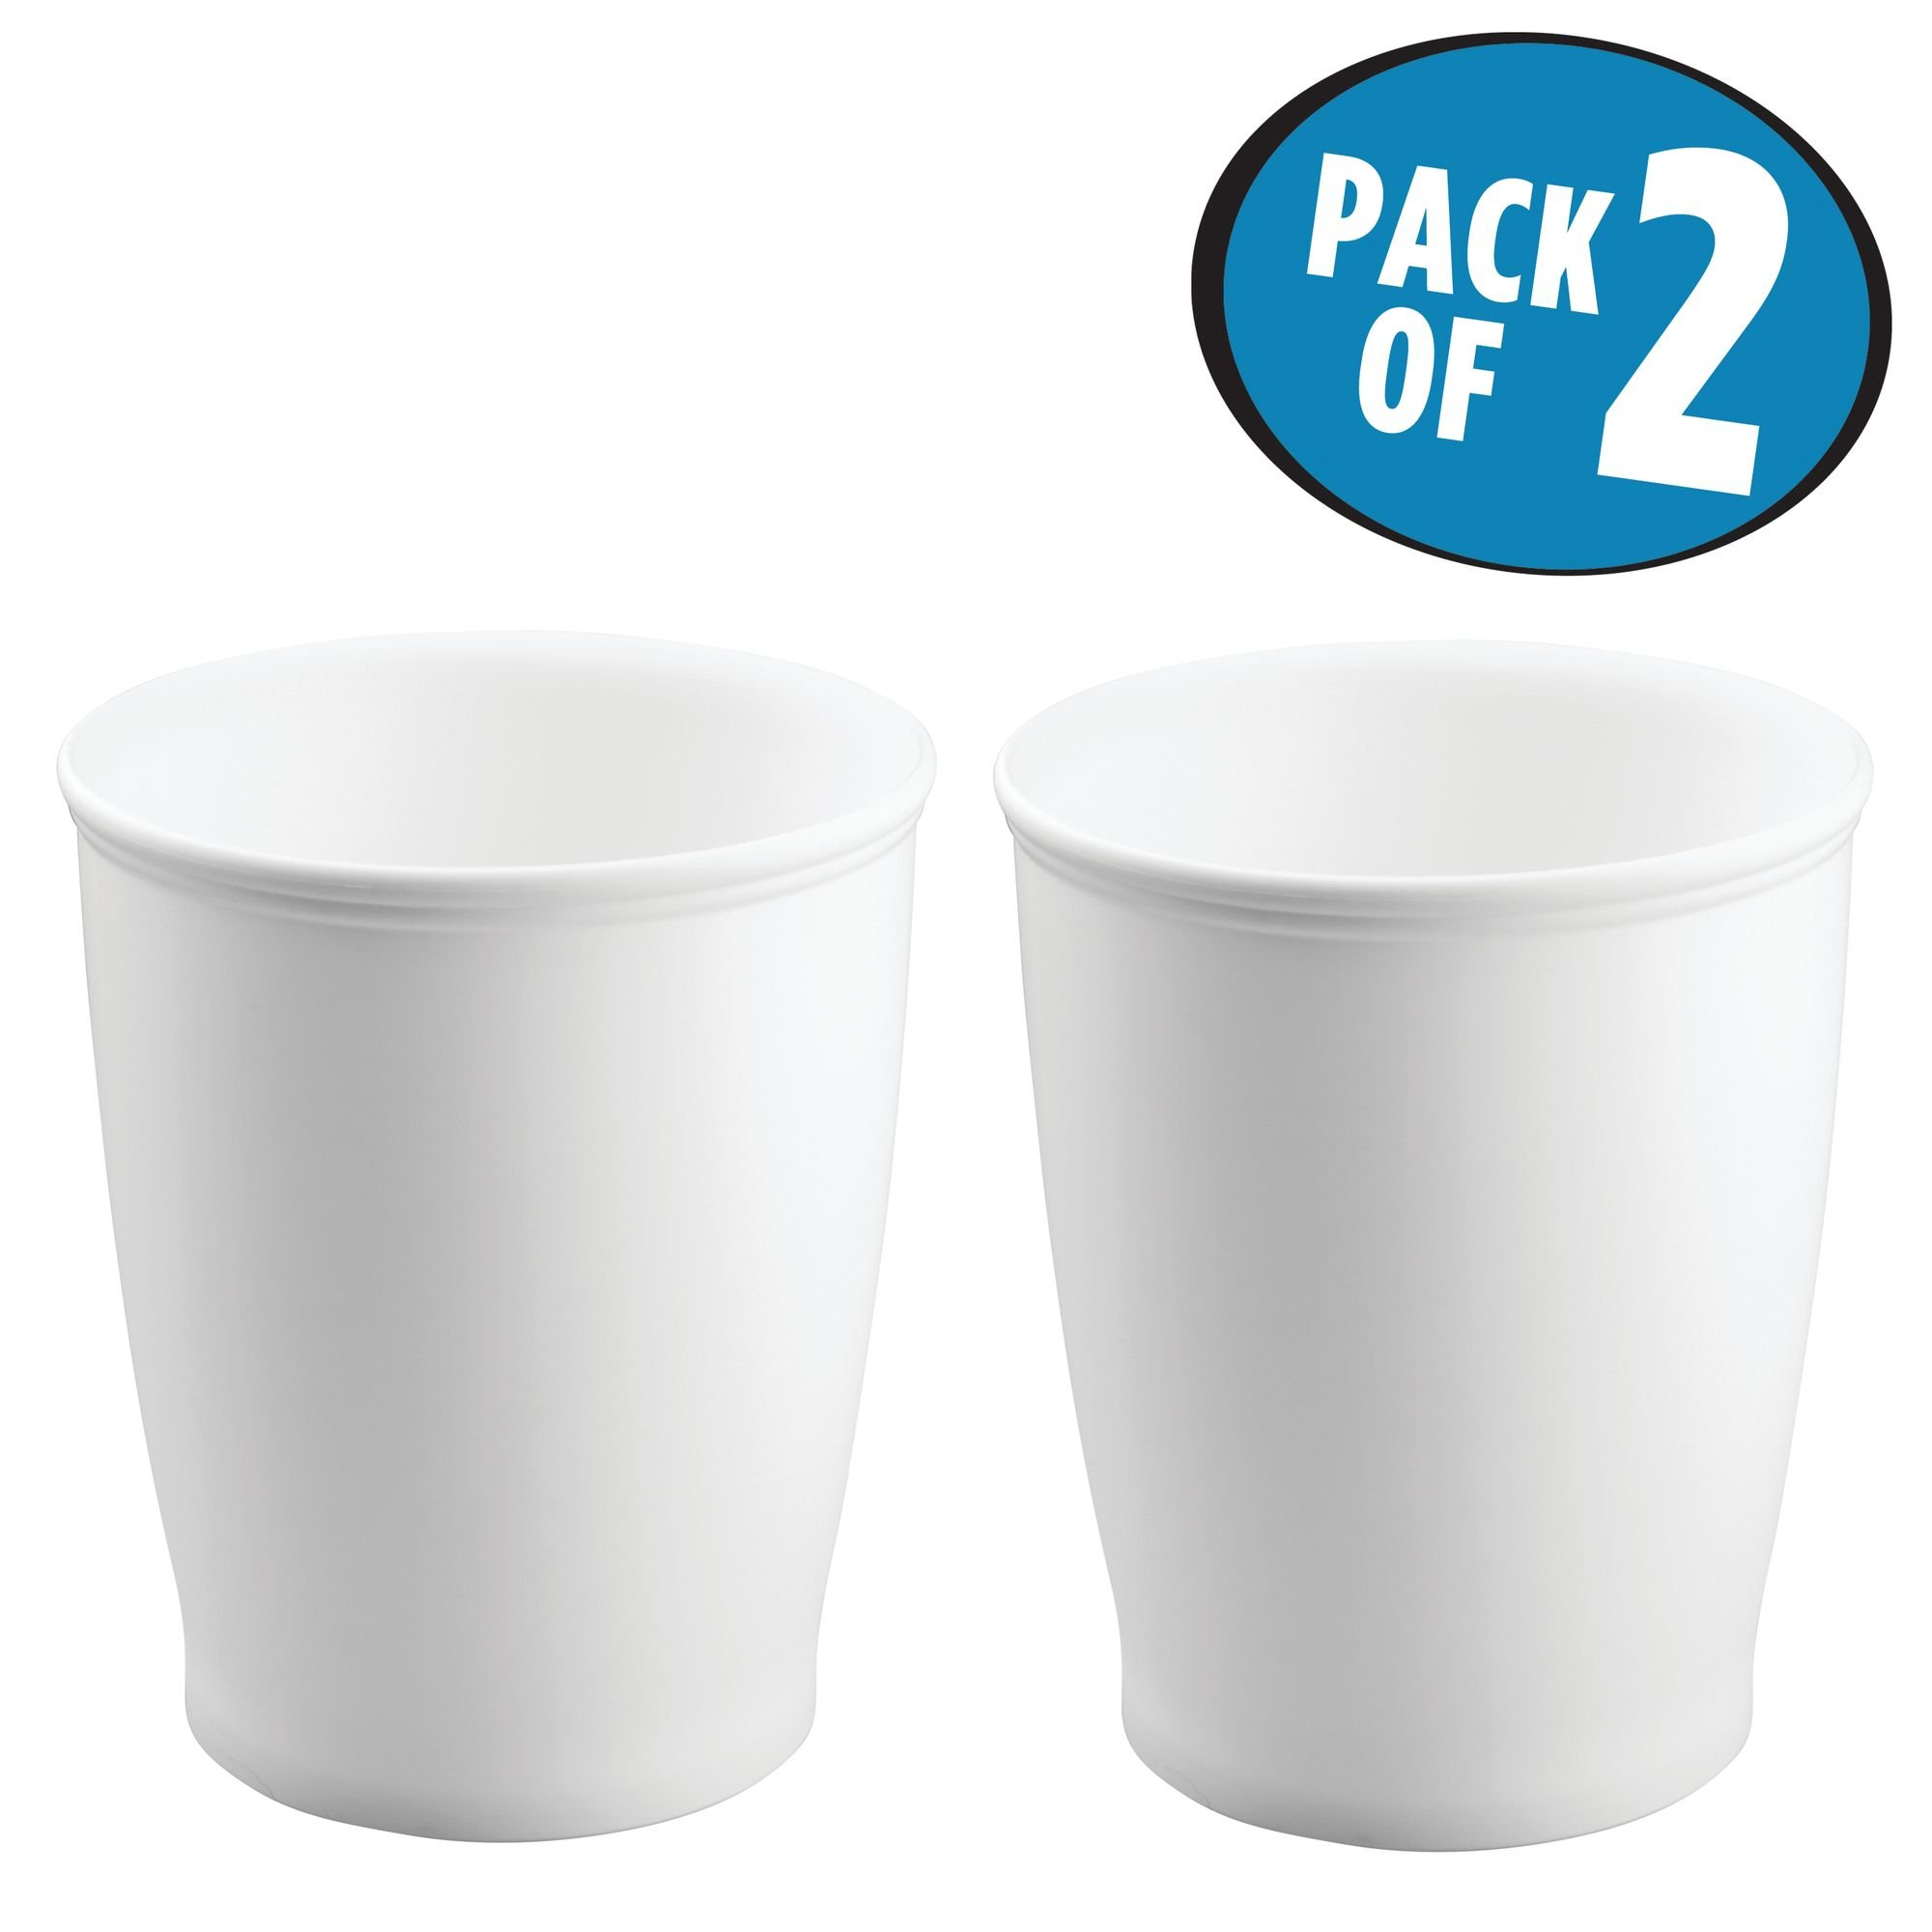 mDesign Round Shatter-Resistant Plastic Small Trash Can Wastebasket, Garbage Container Bin for Bathrooms, Kitchens, Home Offices, Dorm Rooms - Pack of 2, White